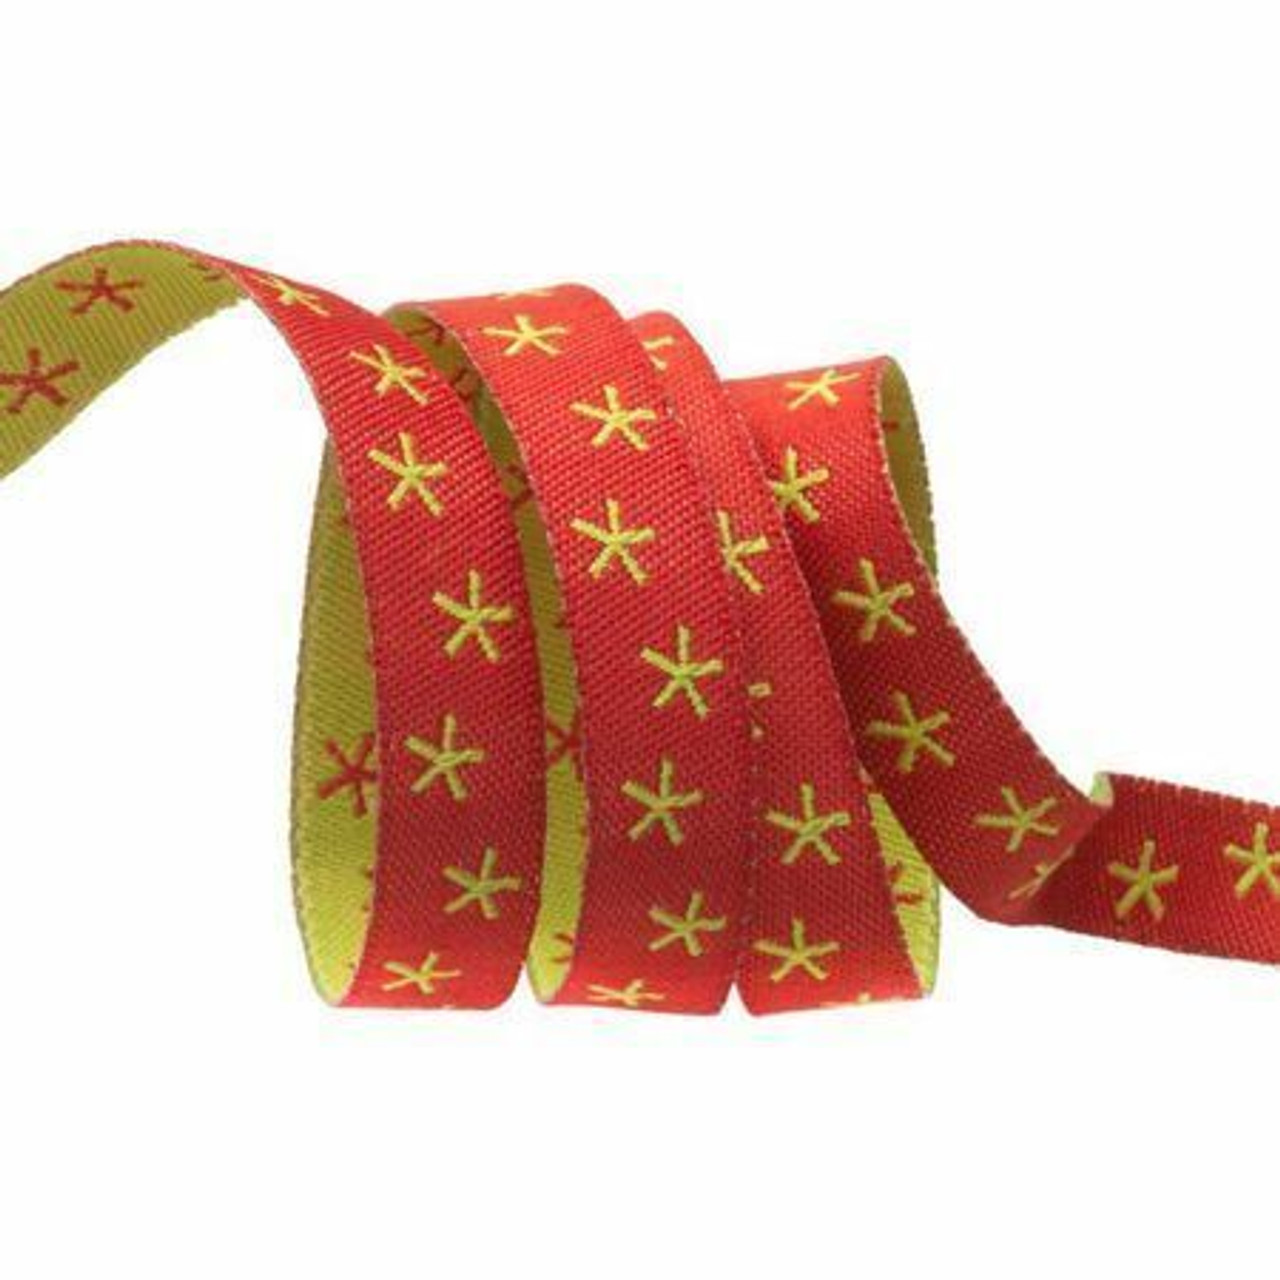 2.5m /'Merry Christmas/' 10mm Wide Red Cotton Ribbon